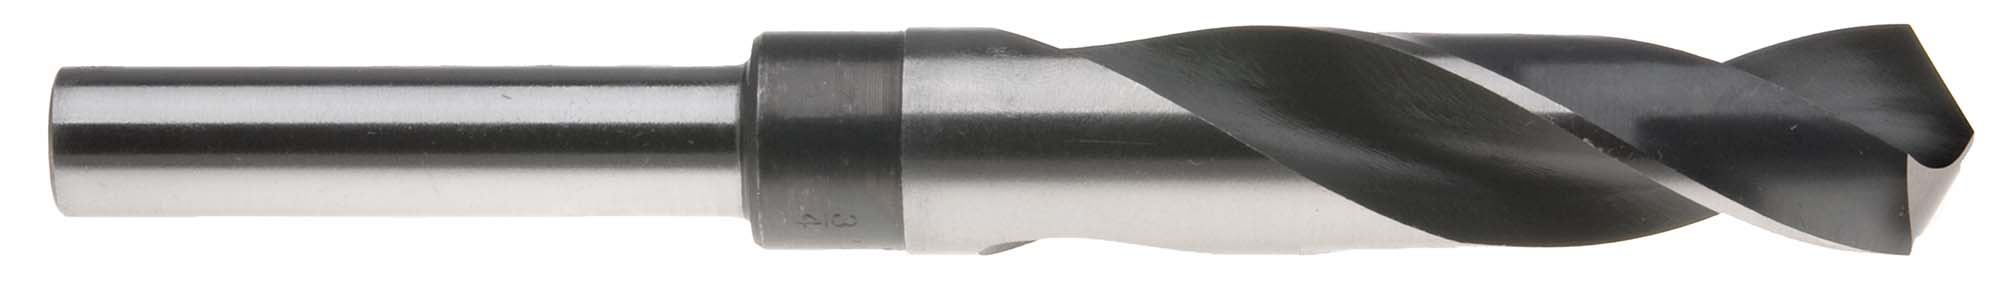 "59/64"" USA Drill Bit with 1/2"" Shank (S+D Type) High Speed Steel"